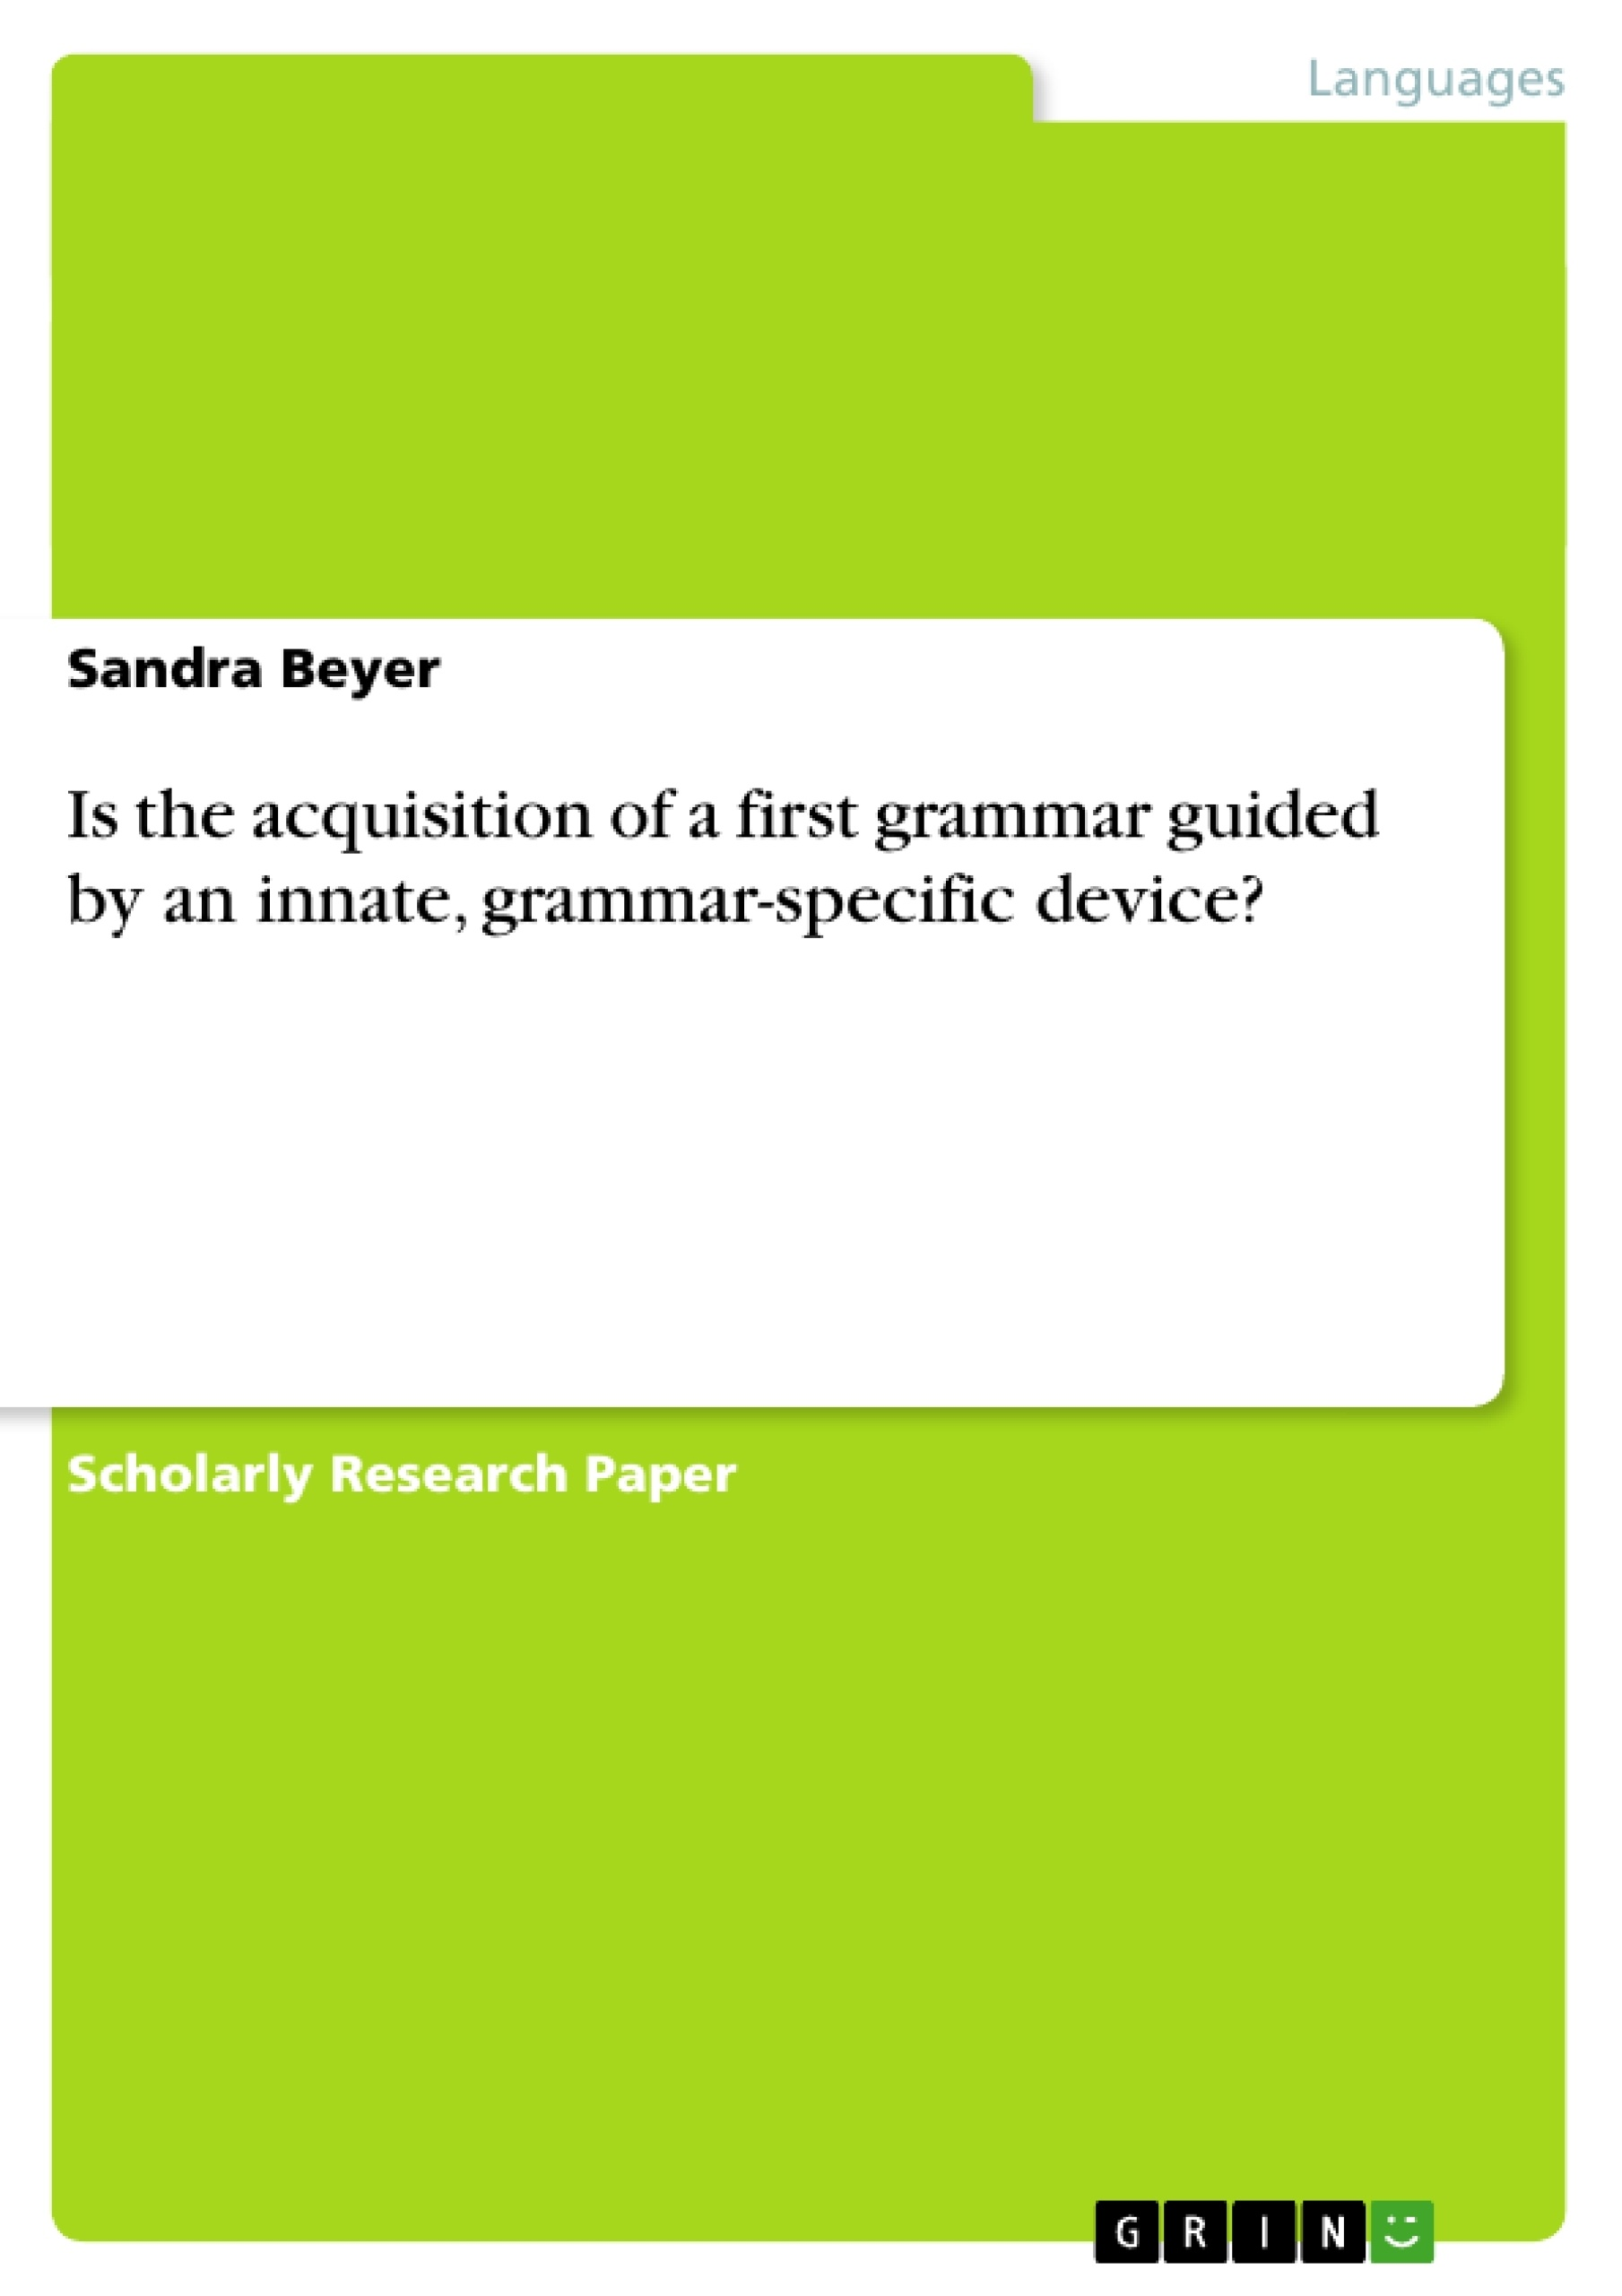 Title: Is the acquisition of a first grammar guided by an innate, grammar-specific device?